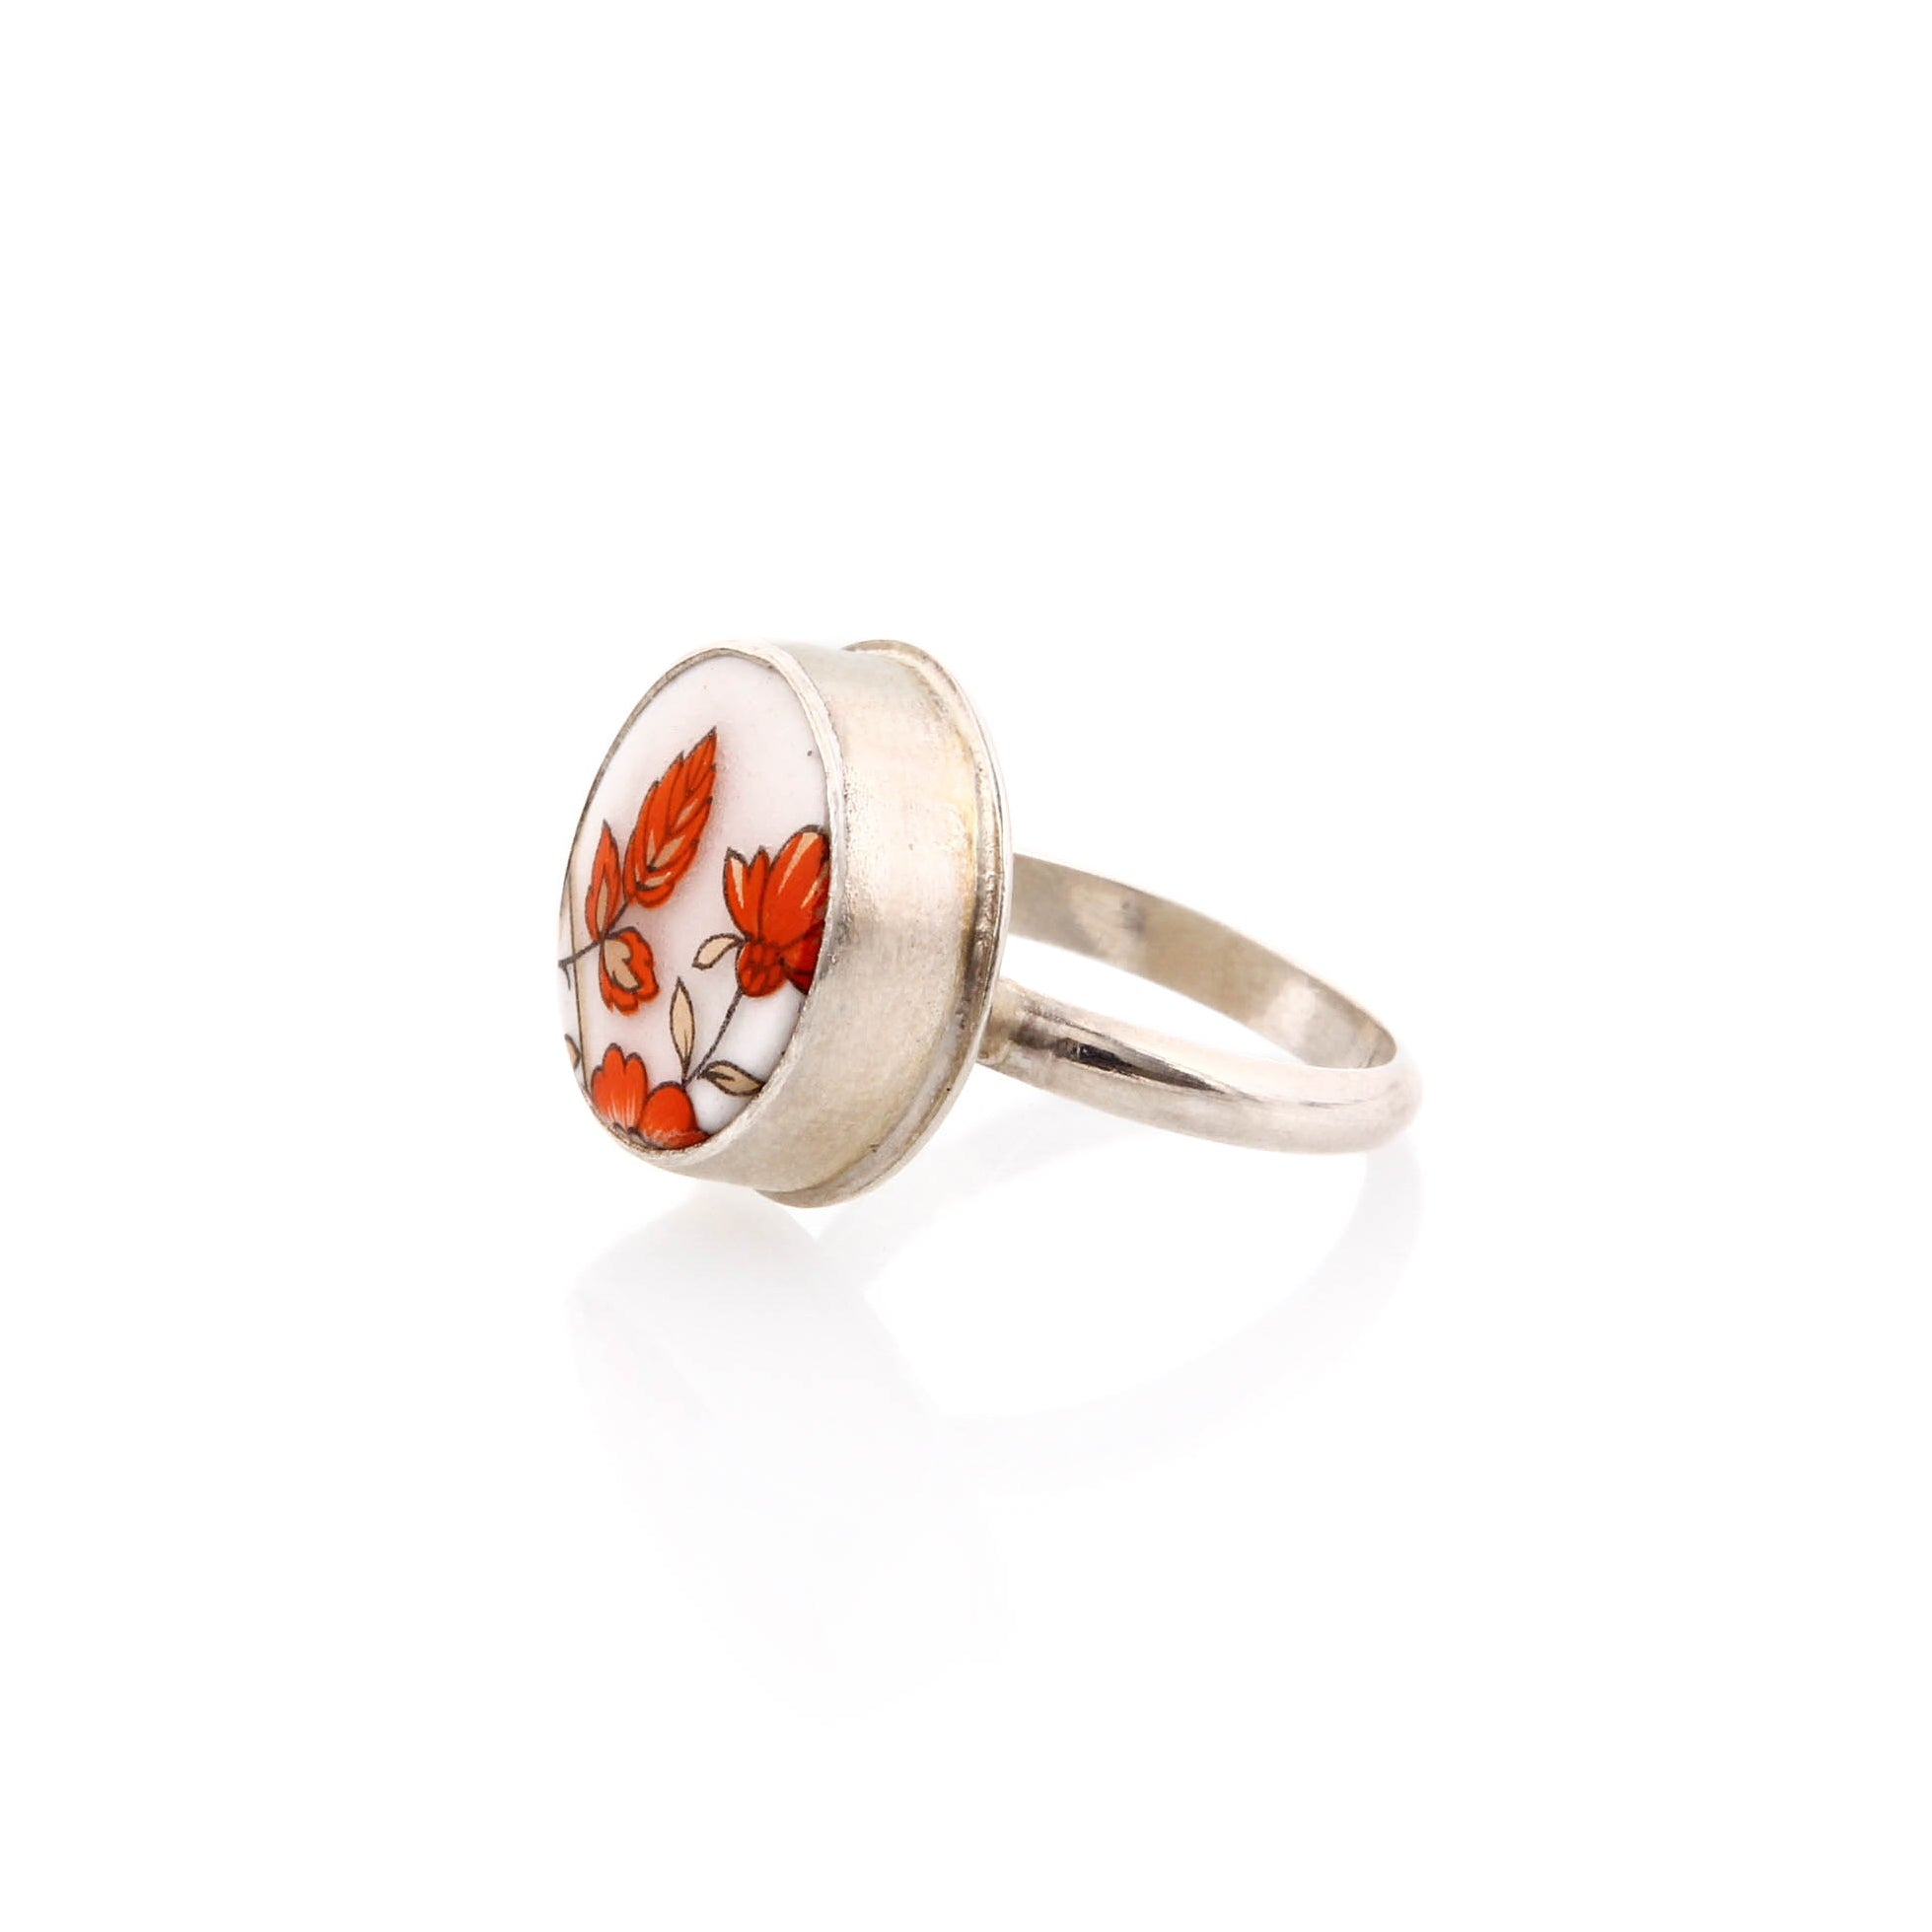 Melanie Sherman, Red Flower on White Porcelain Ring, Size 6